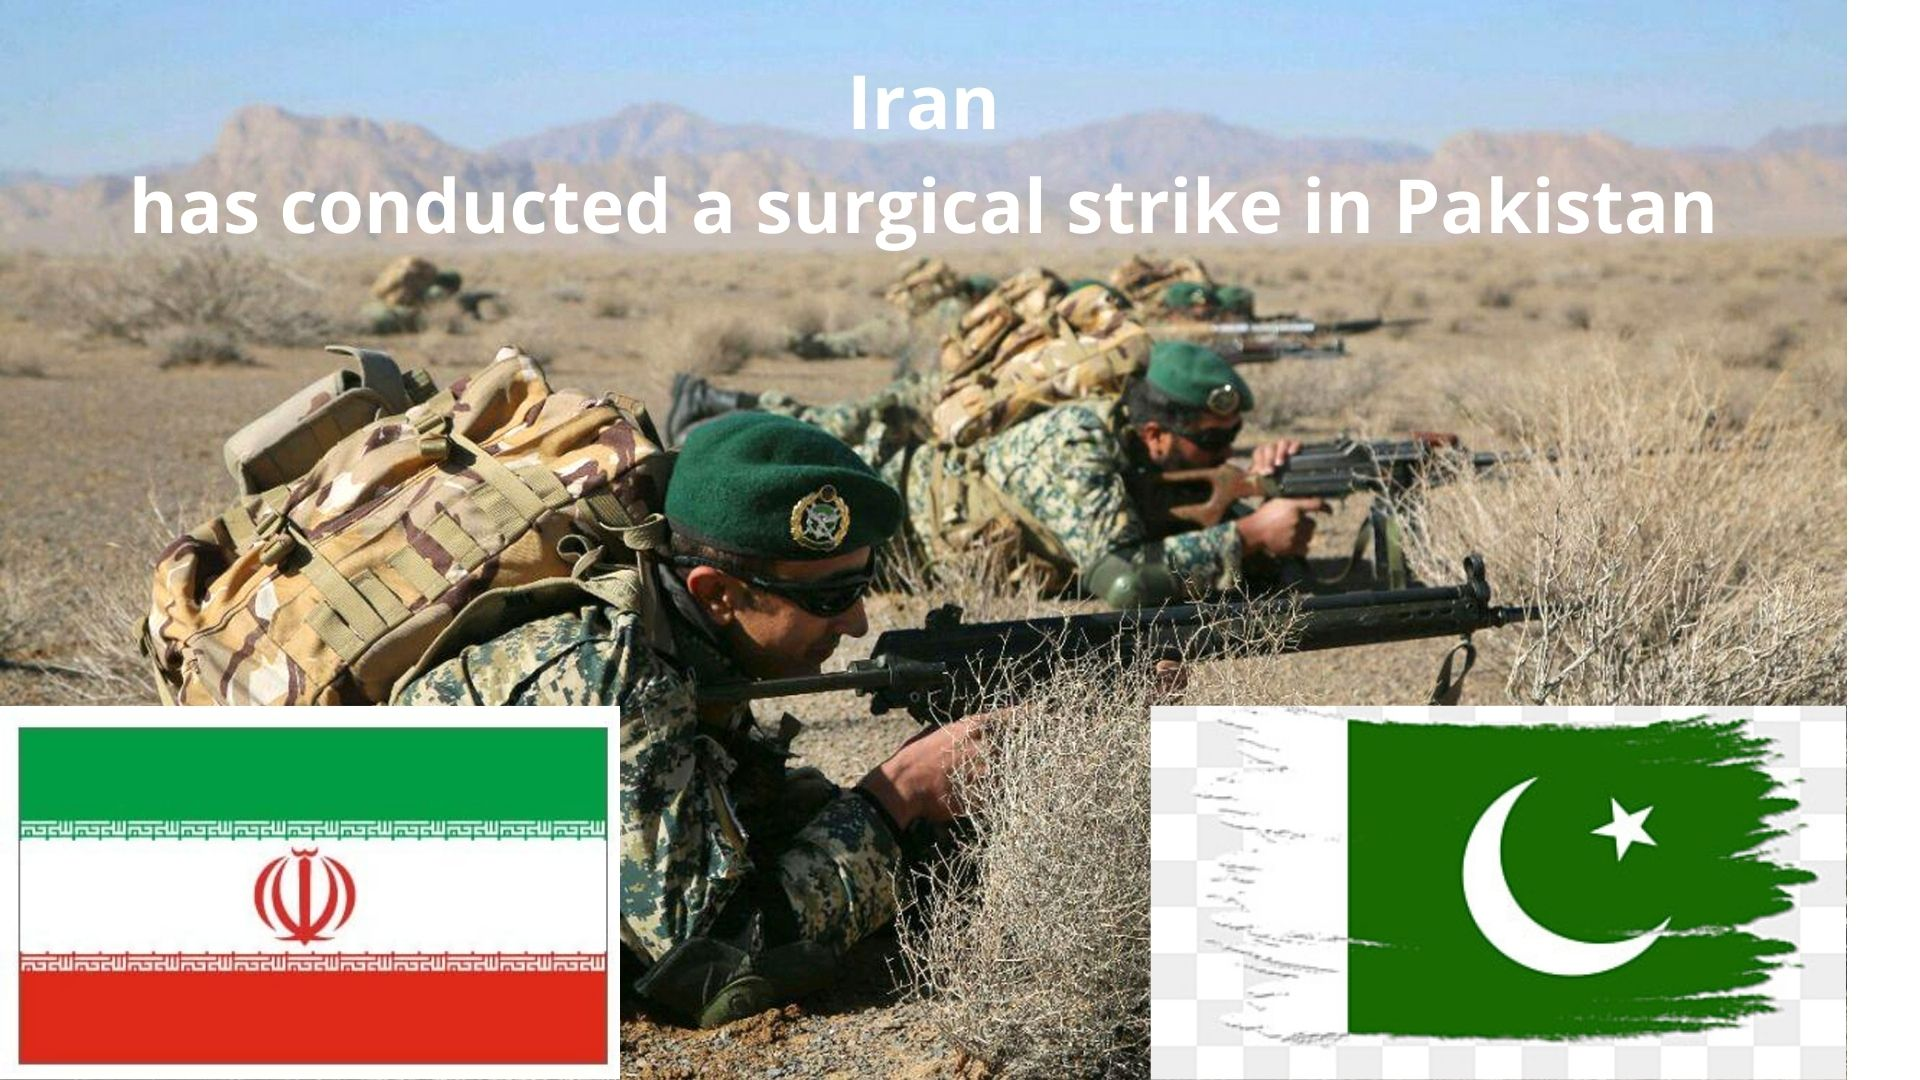 Iran conducted a surgical strike